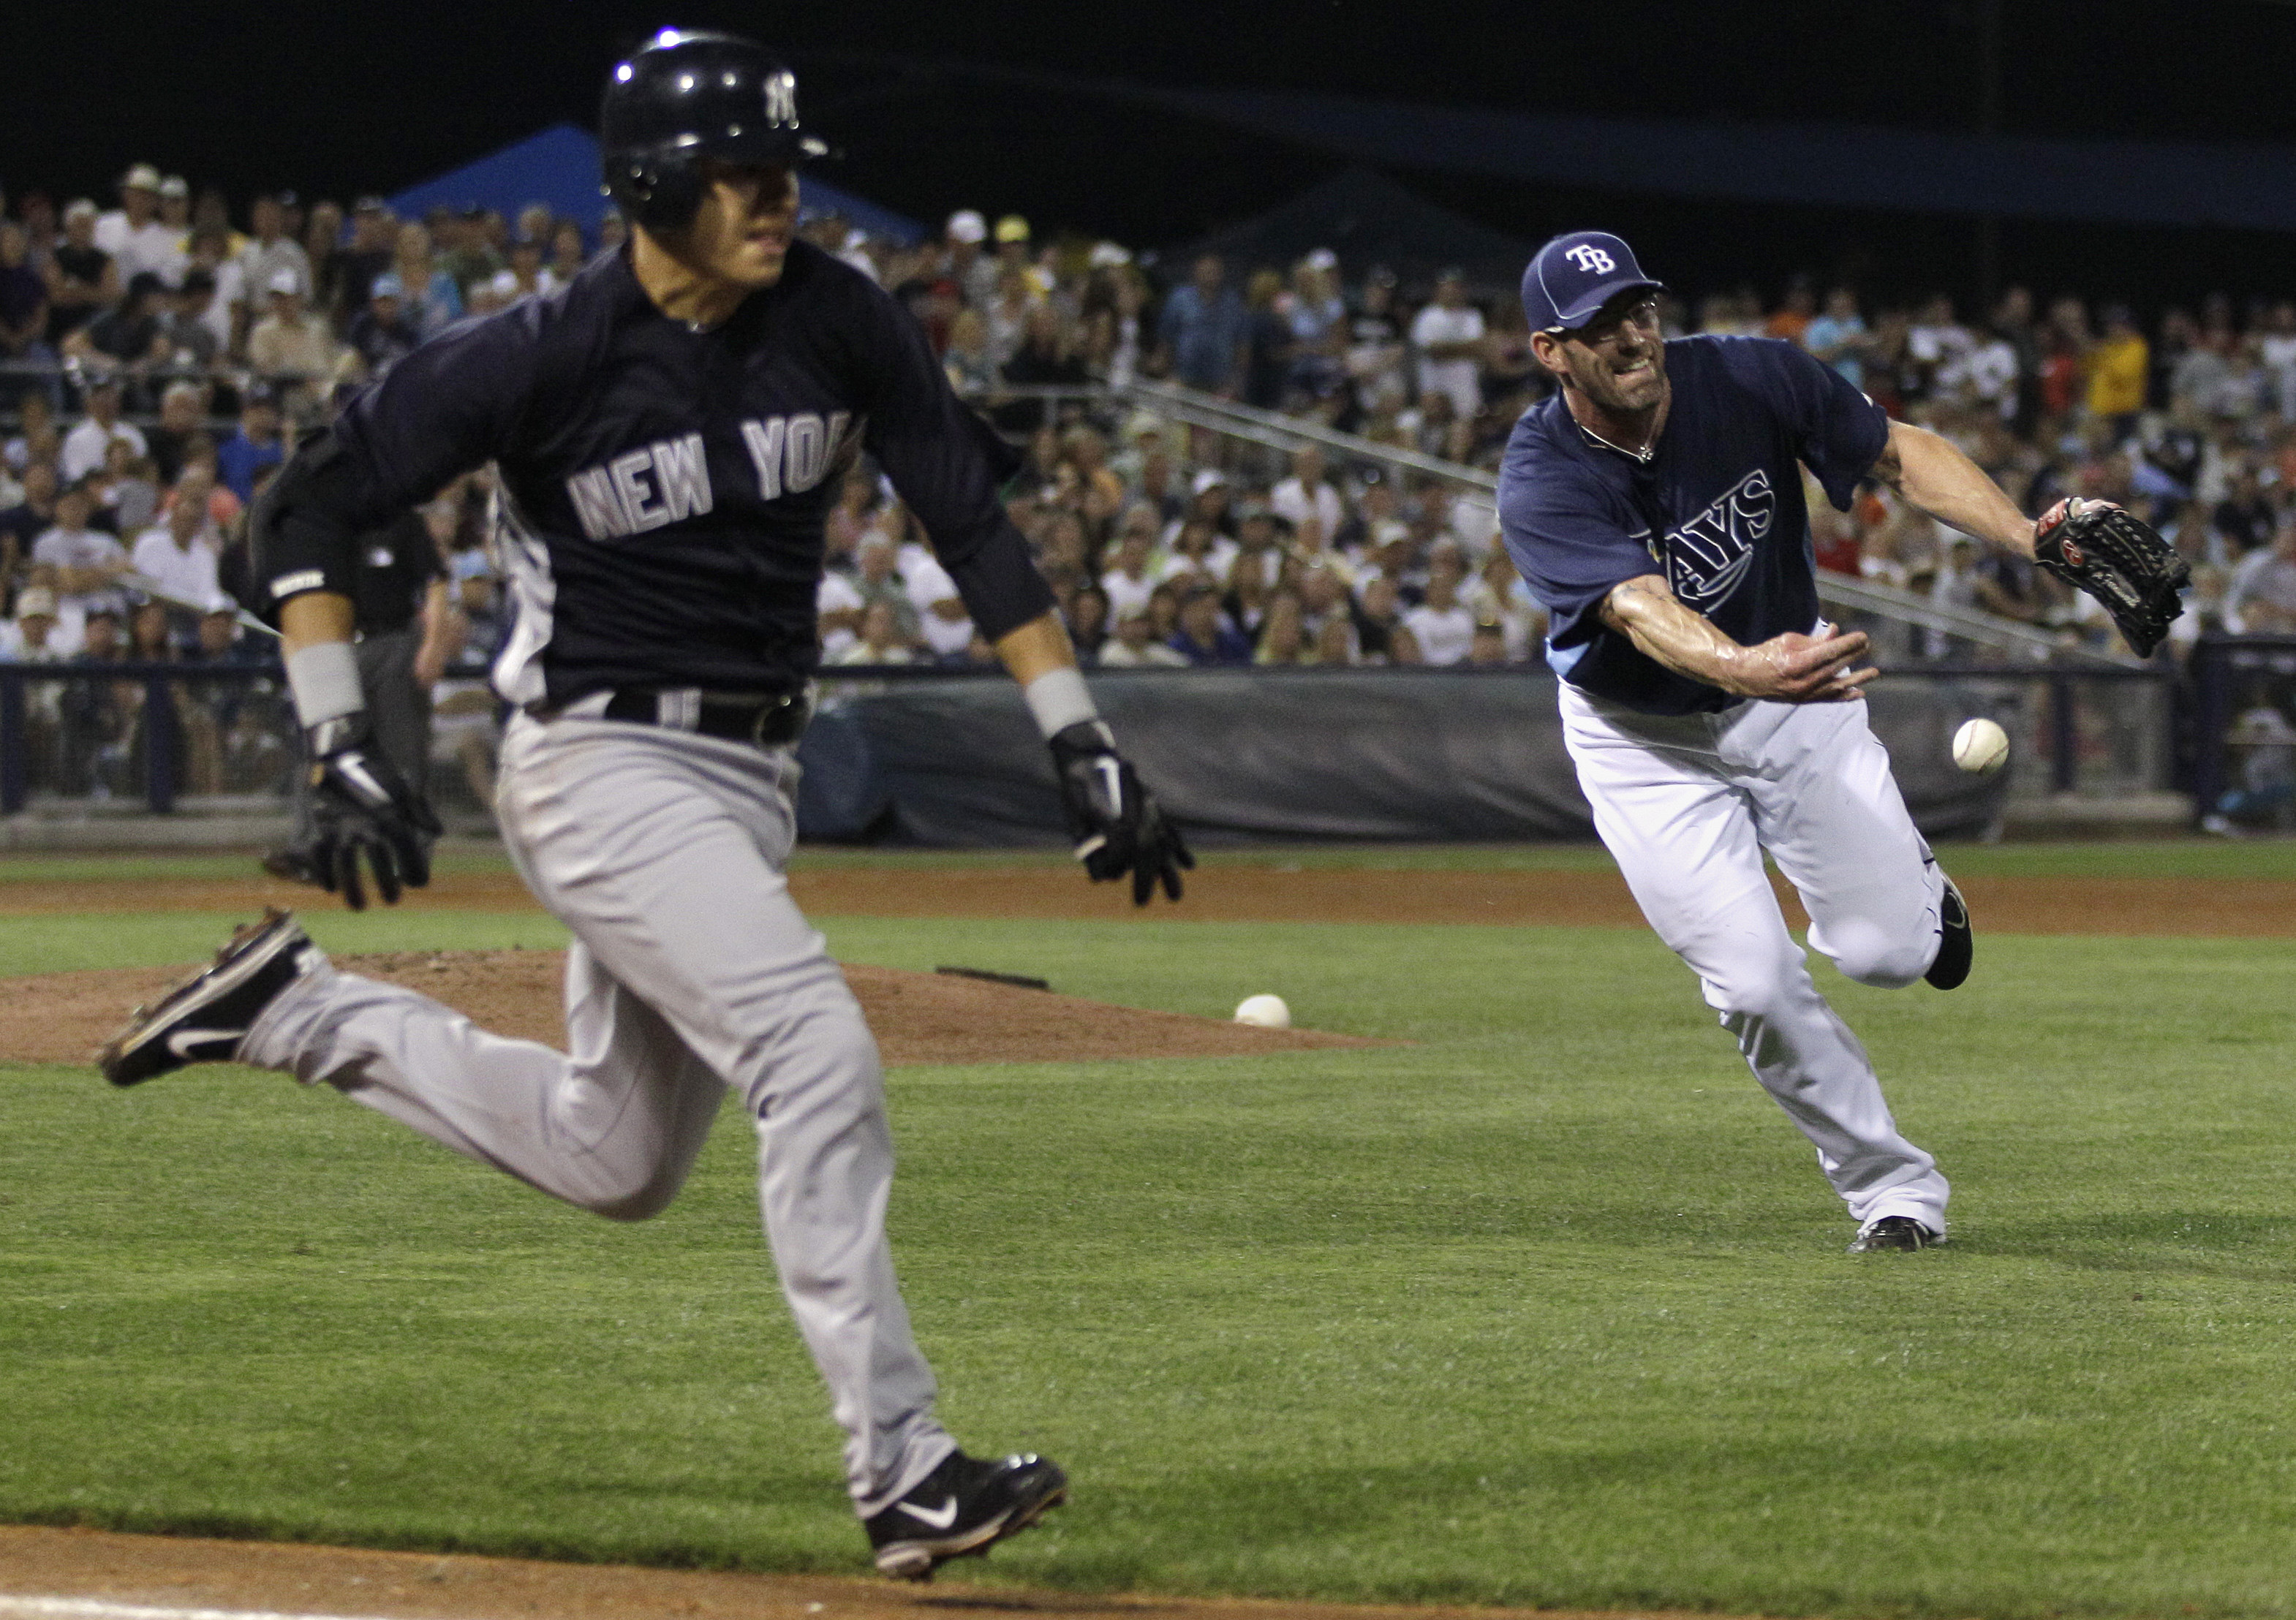 Tampa Bay Rays pitcher Kyle Farnsworth, right, flips the ball to first baseman Dan Johnson on a sacrifice bunt by New York Yankees Ramiro Pena in the fifth inning of a spring training baseball game in Port Charlotte, Fla., Monday, March 21, 2011. (AP Photo/Charles Krupa)